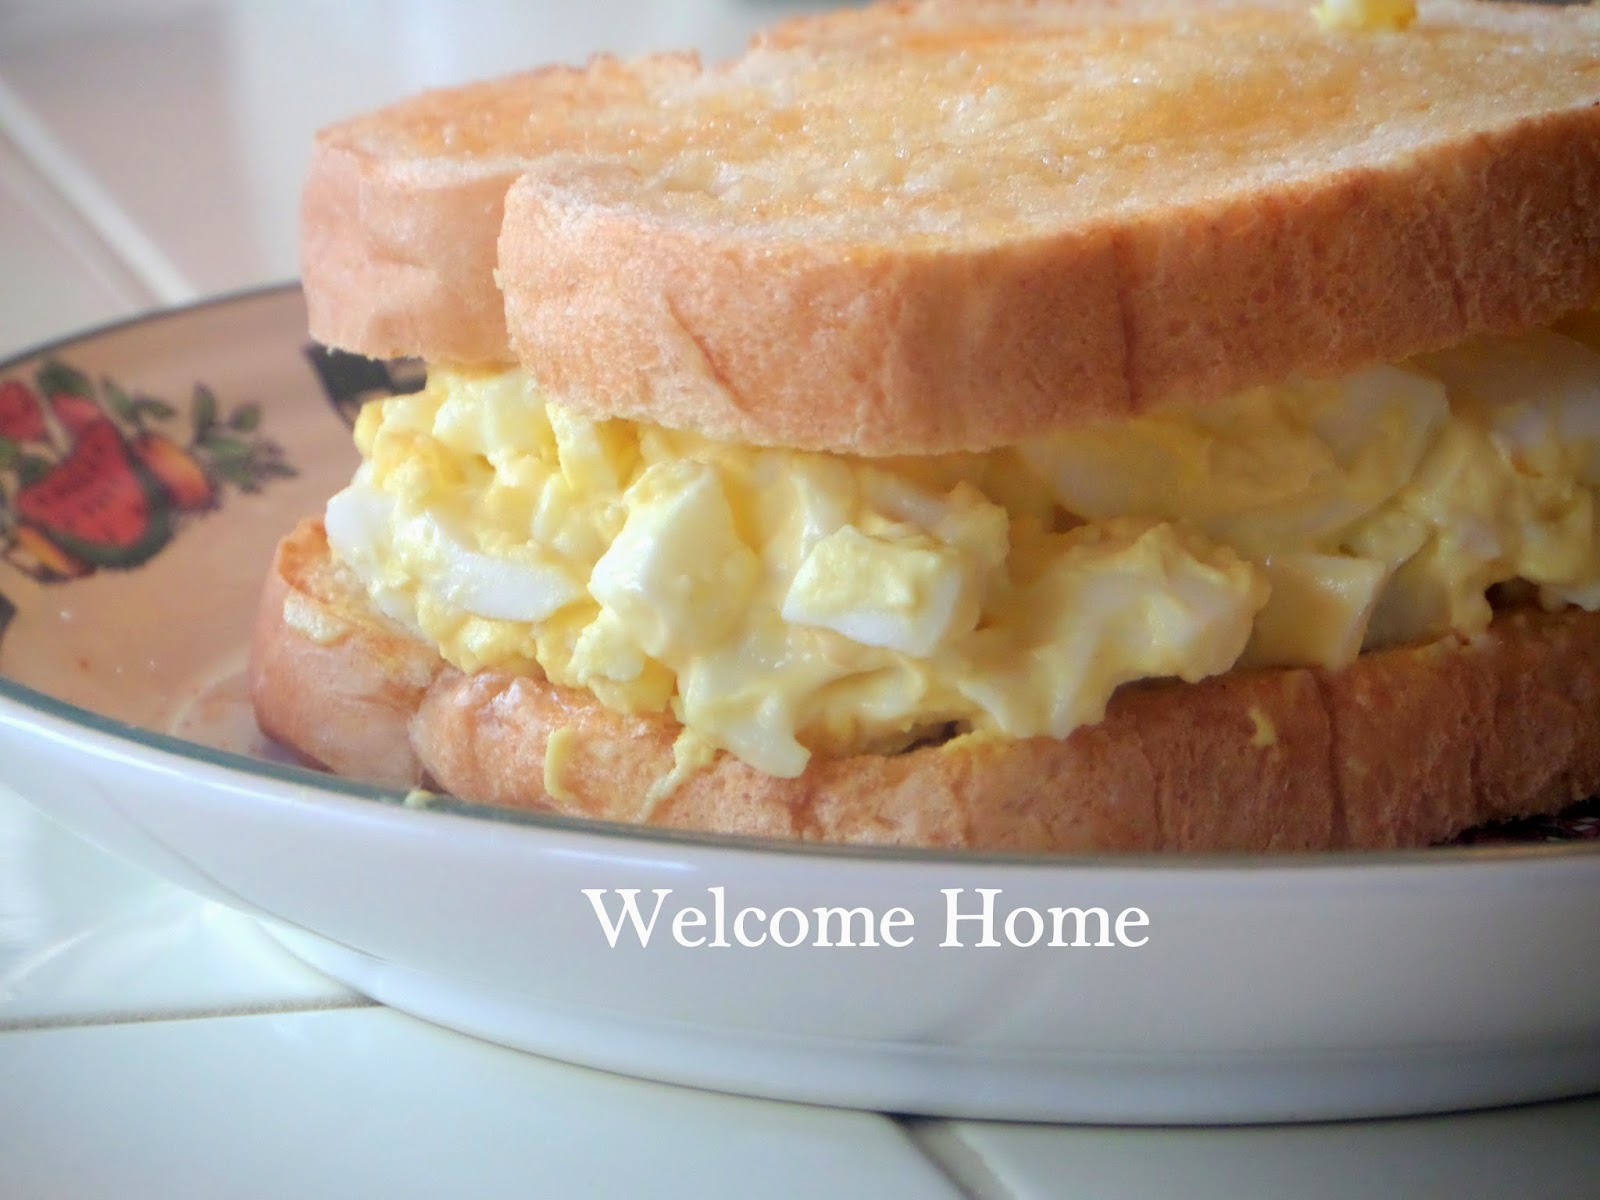 Welcome Home Blog: ♥ Classic Egg Salad Sandwich